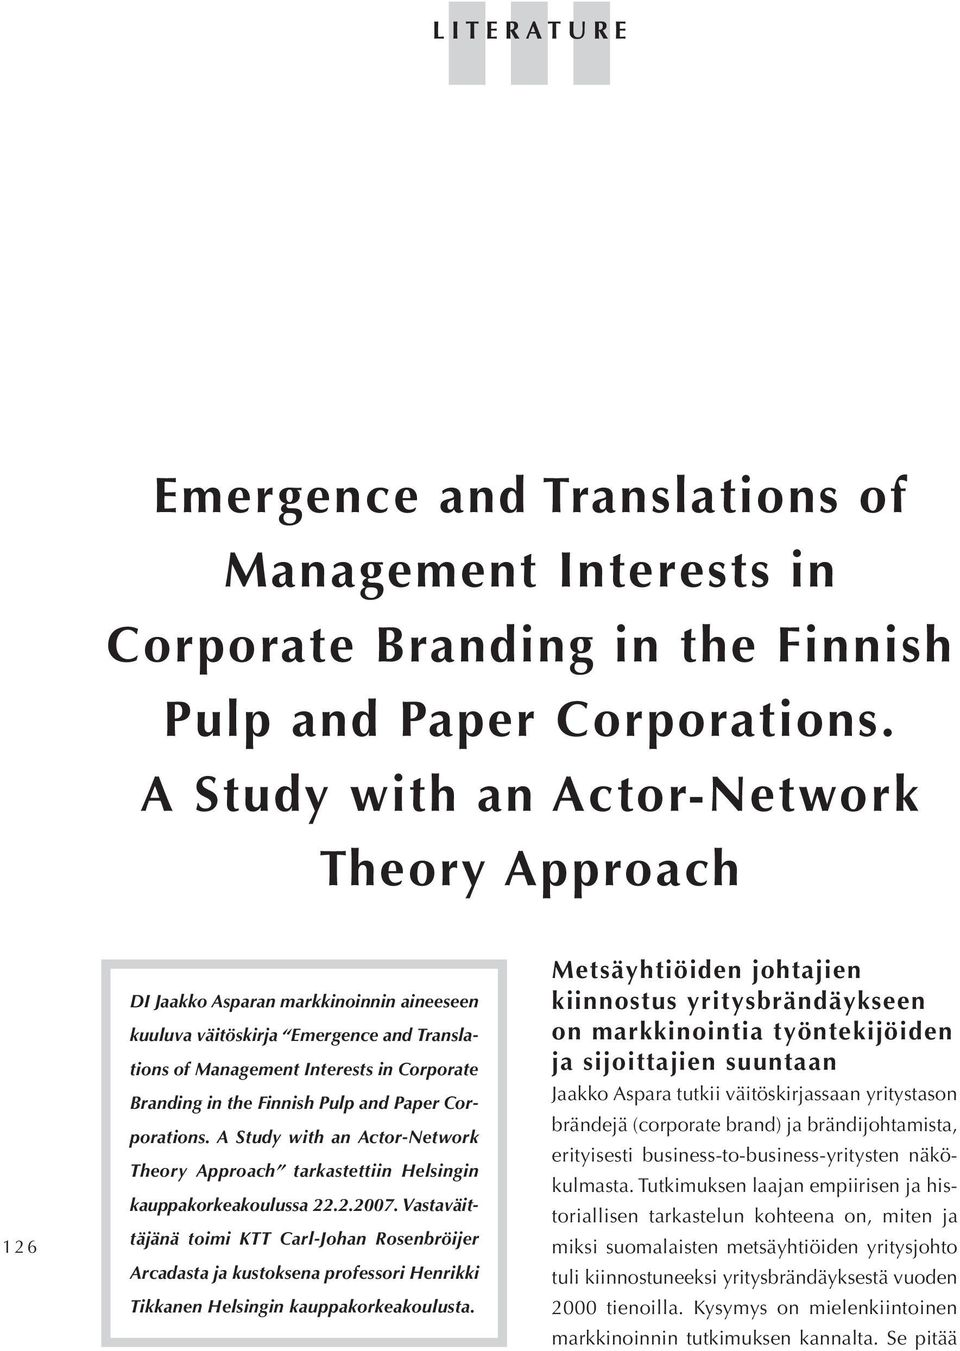 Pulp and Paper Corporations. AStudy with an Actor-Network Theory Approach tarkastettiin Helsingin kauppakorkeakoulussa 22.2.2007.